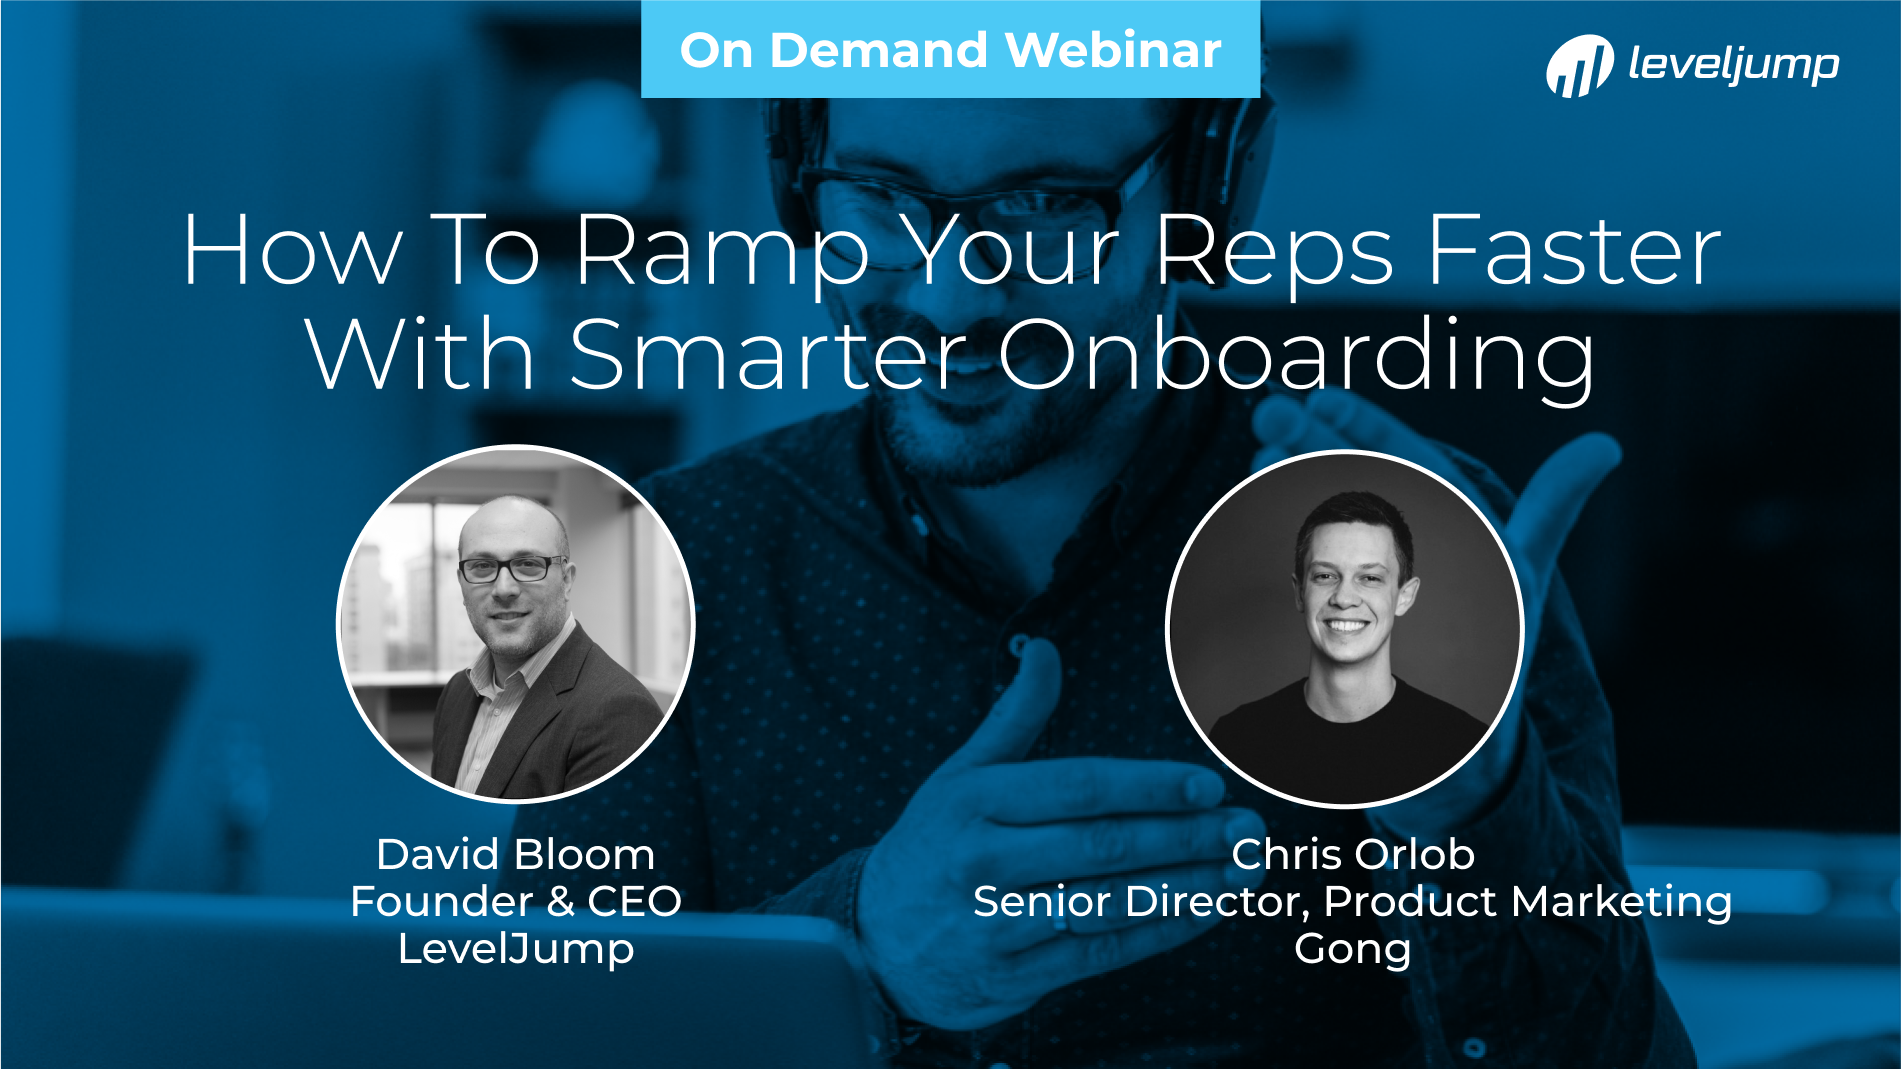 How To Ramp Your Reps Faster With Smarter Onboarding